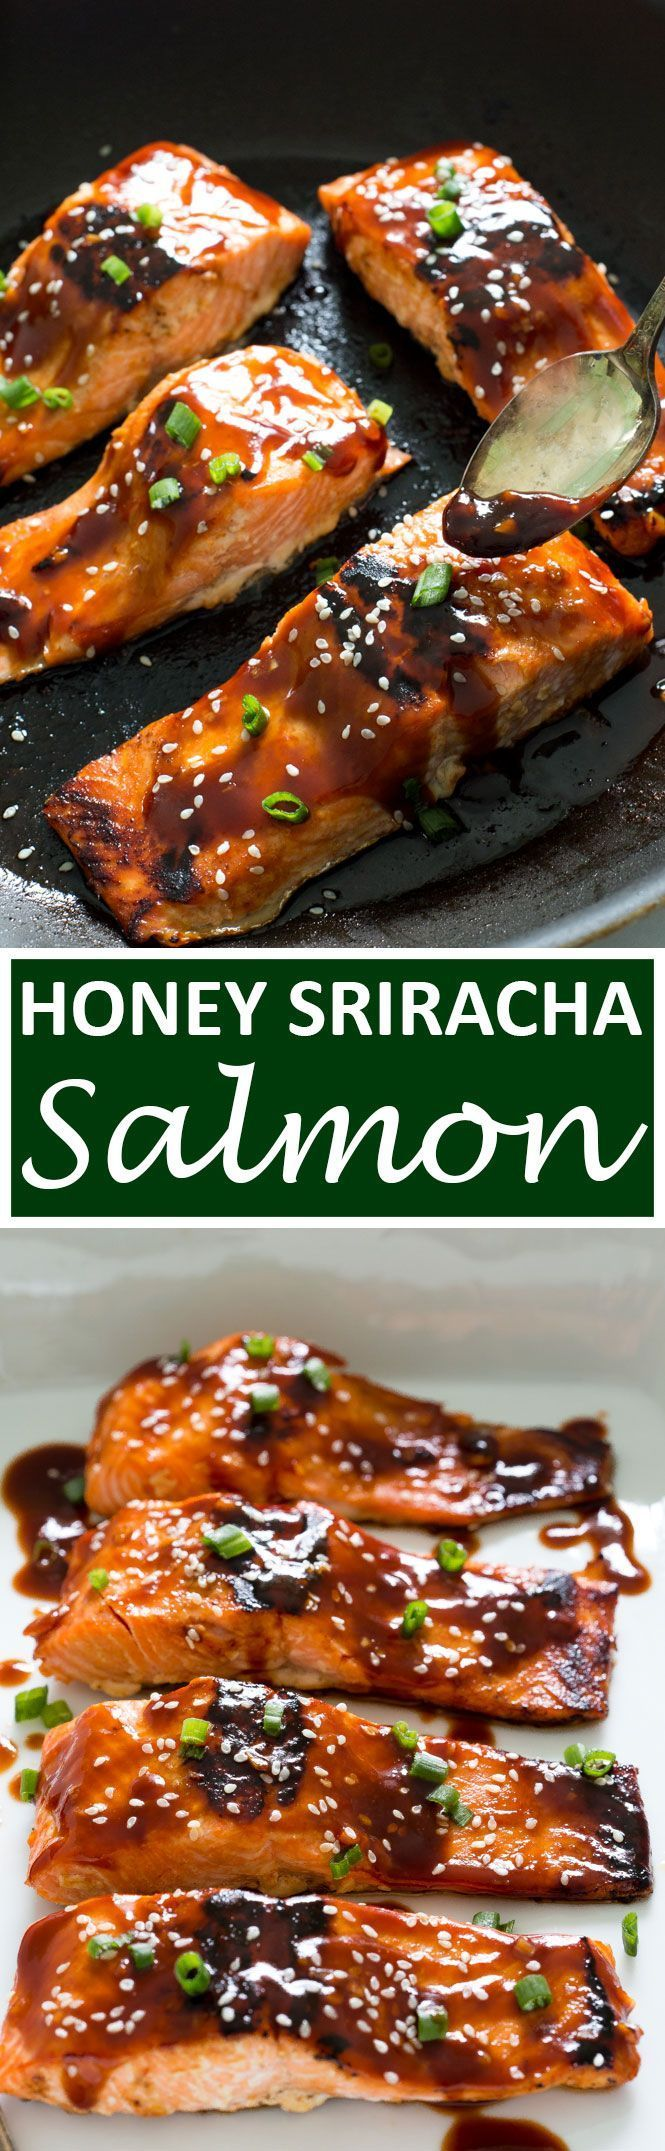 Sweet and Spicy Honey Sriracha Salmon. chefsavvy.com I tried this sauce on chicken since I am not a fan of fish but the photos made my mouth water. I enjoyed the flavor but almost wanted to add more honey next time I make it and have more sauce both for marinade and a little extra after its cooked. I still give this recipe a thumb up. ~carilynnh 1fitlife.com